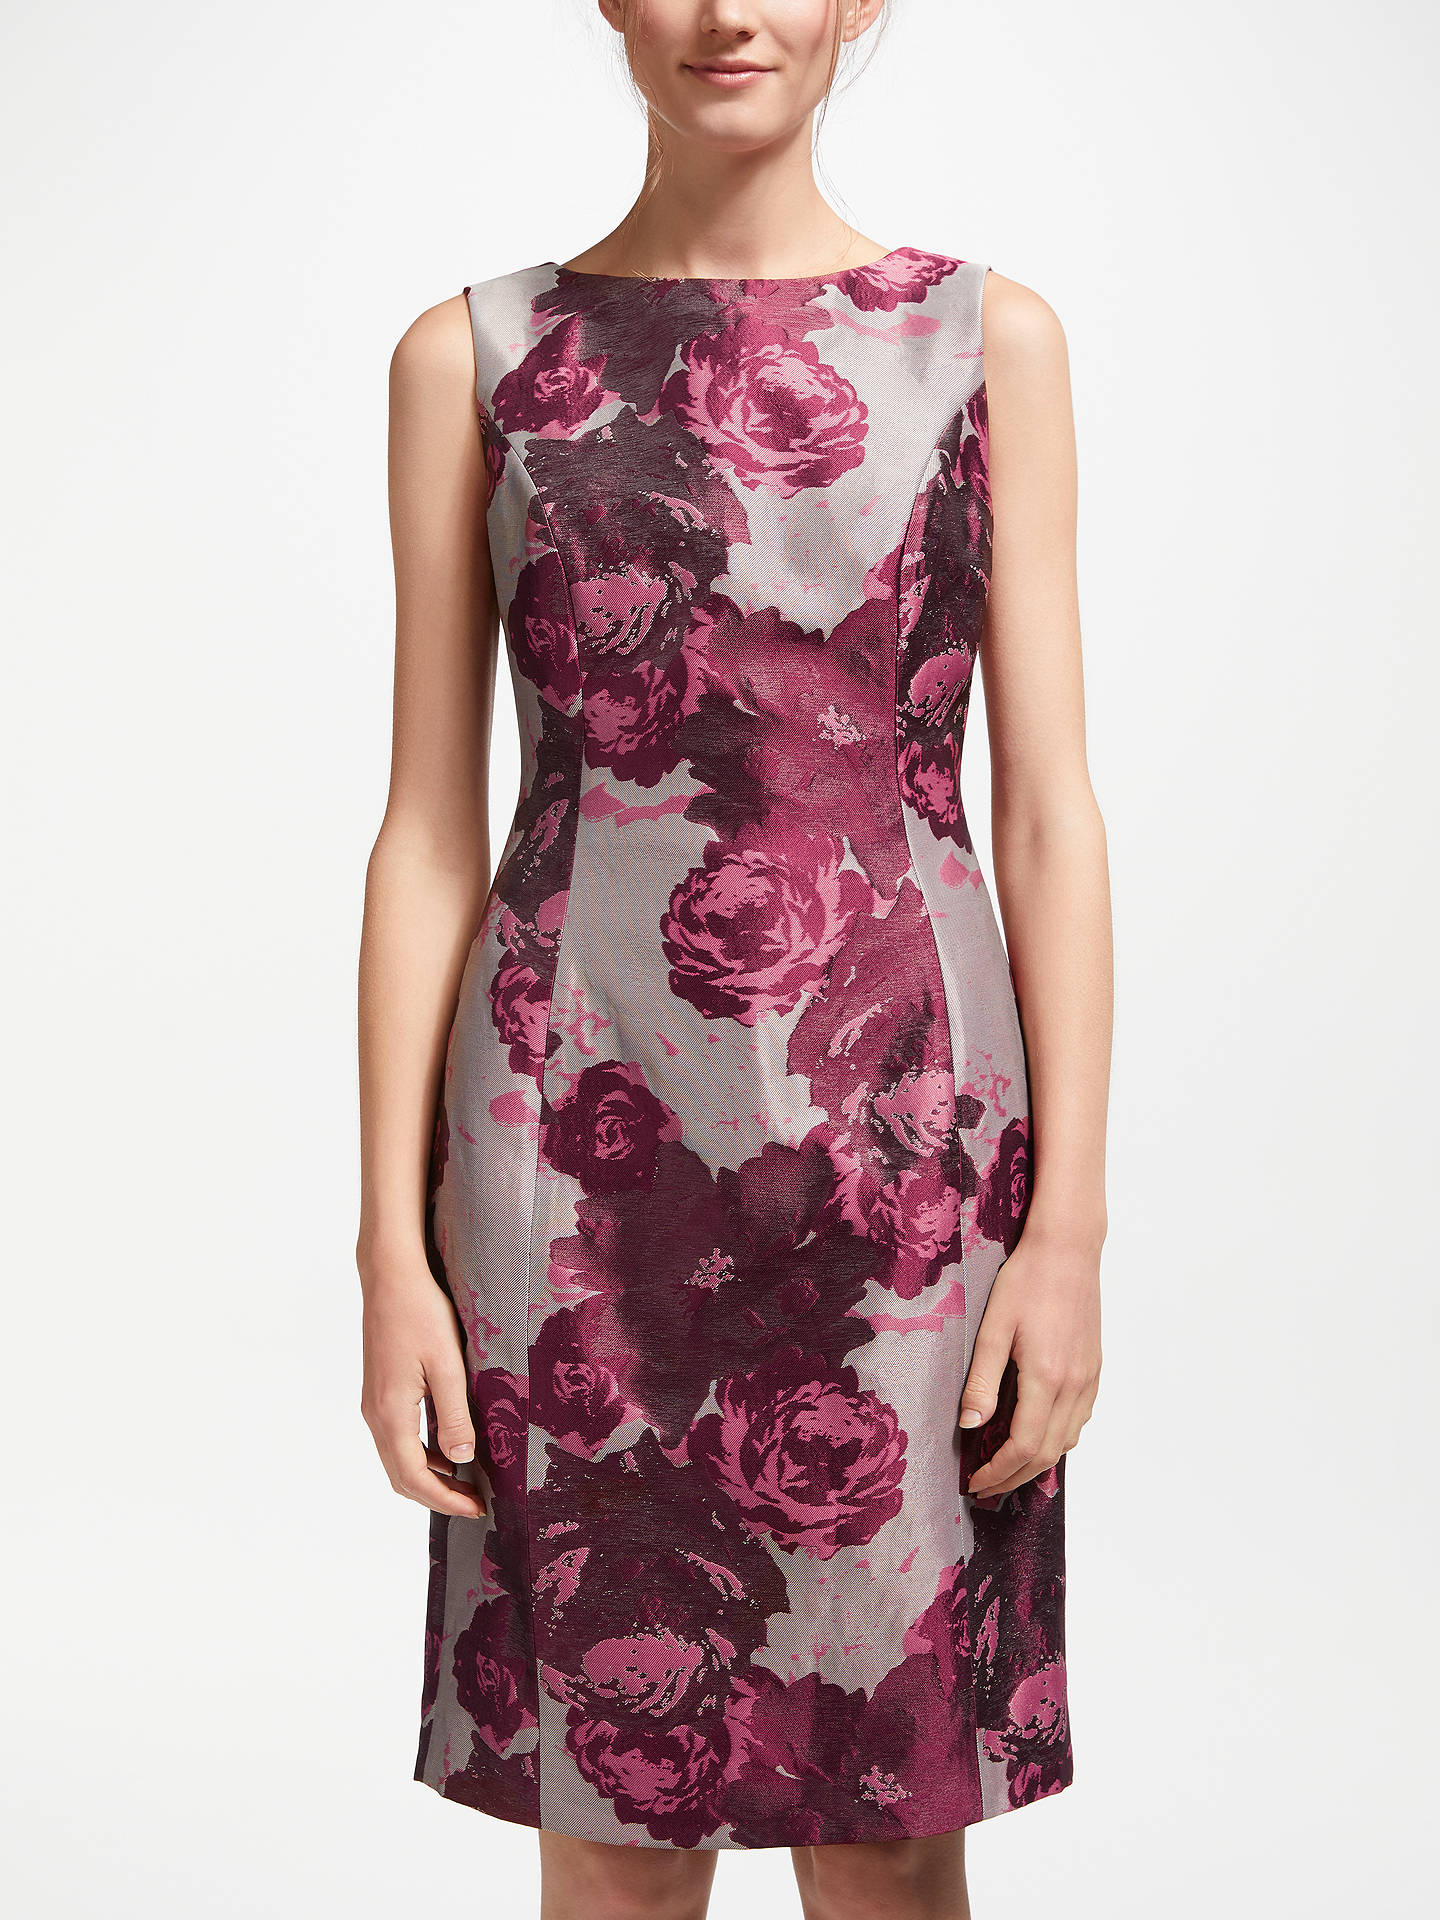 BuyBruce by Bruce Oldfield Jacquard Shift Dress, Pink/Wine Tasting, 8 Online at johnlewis.com